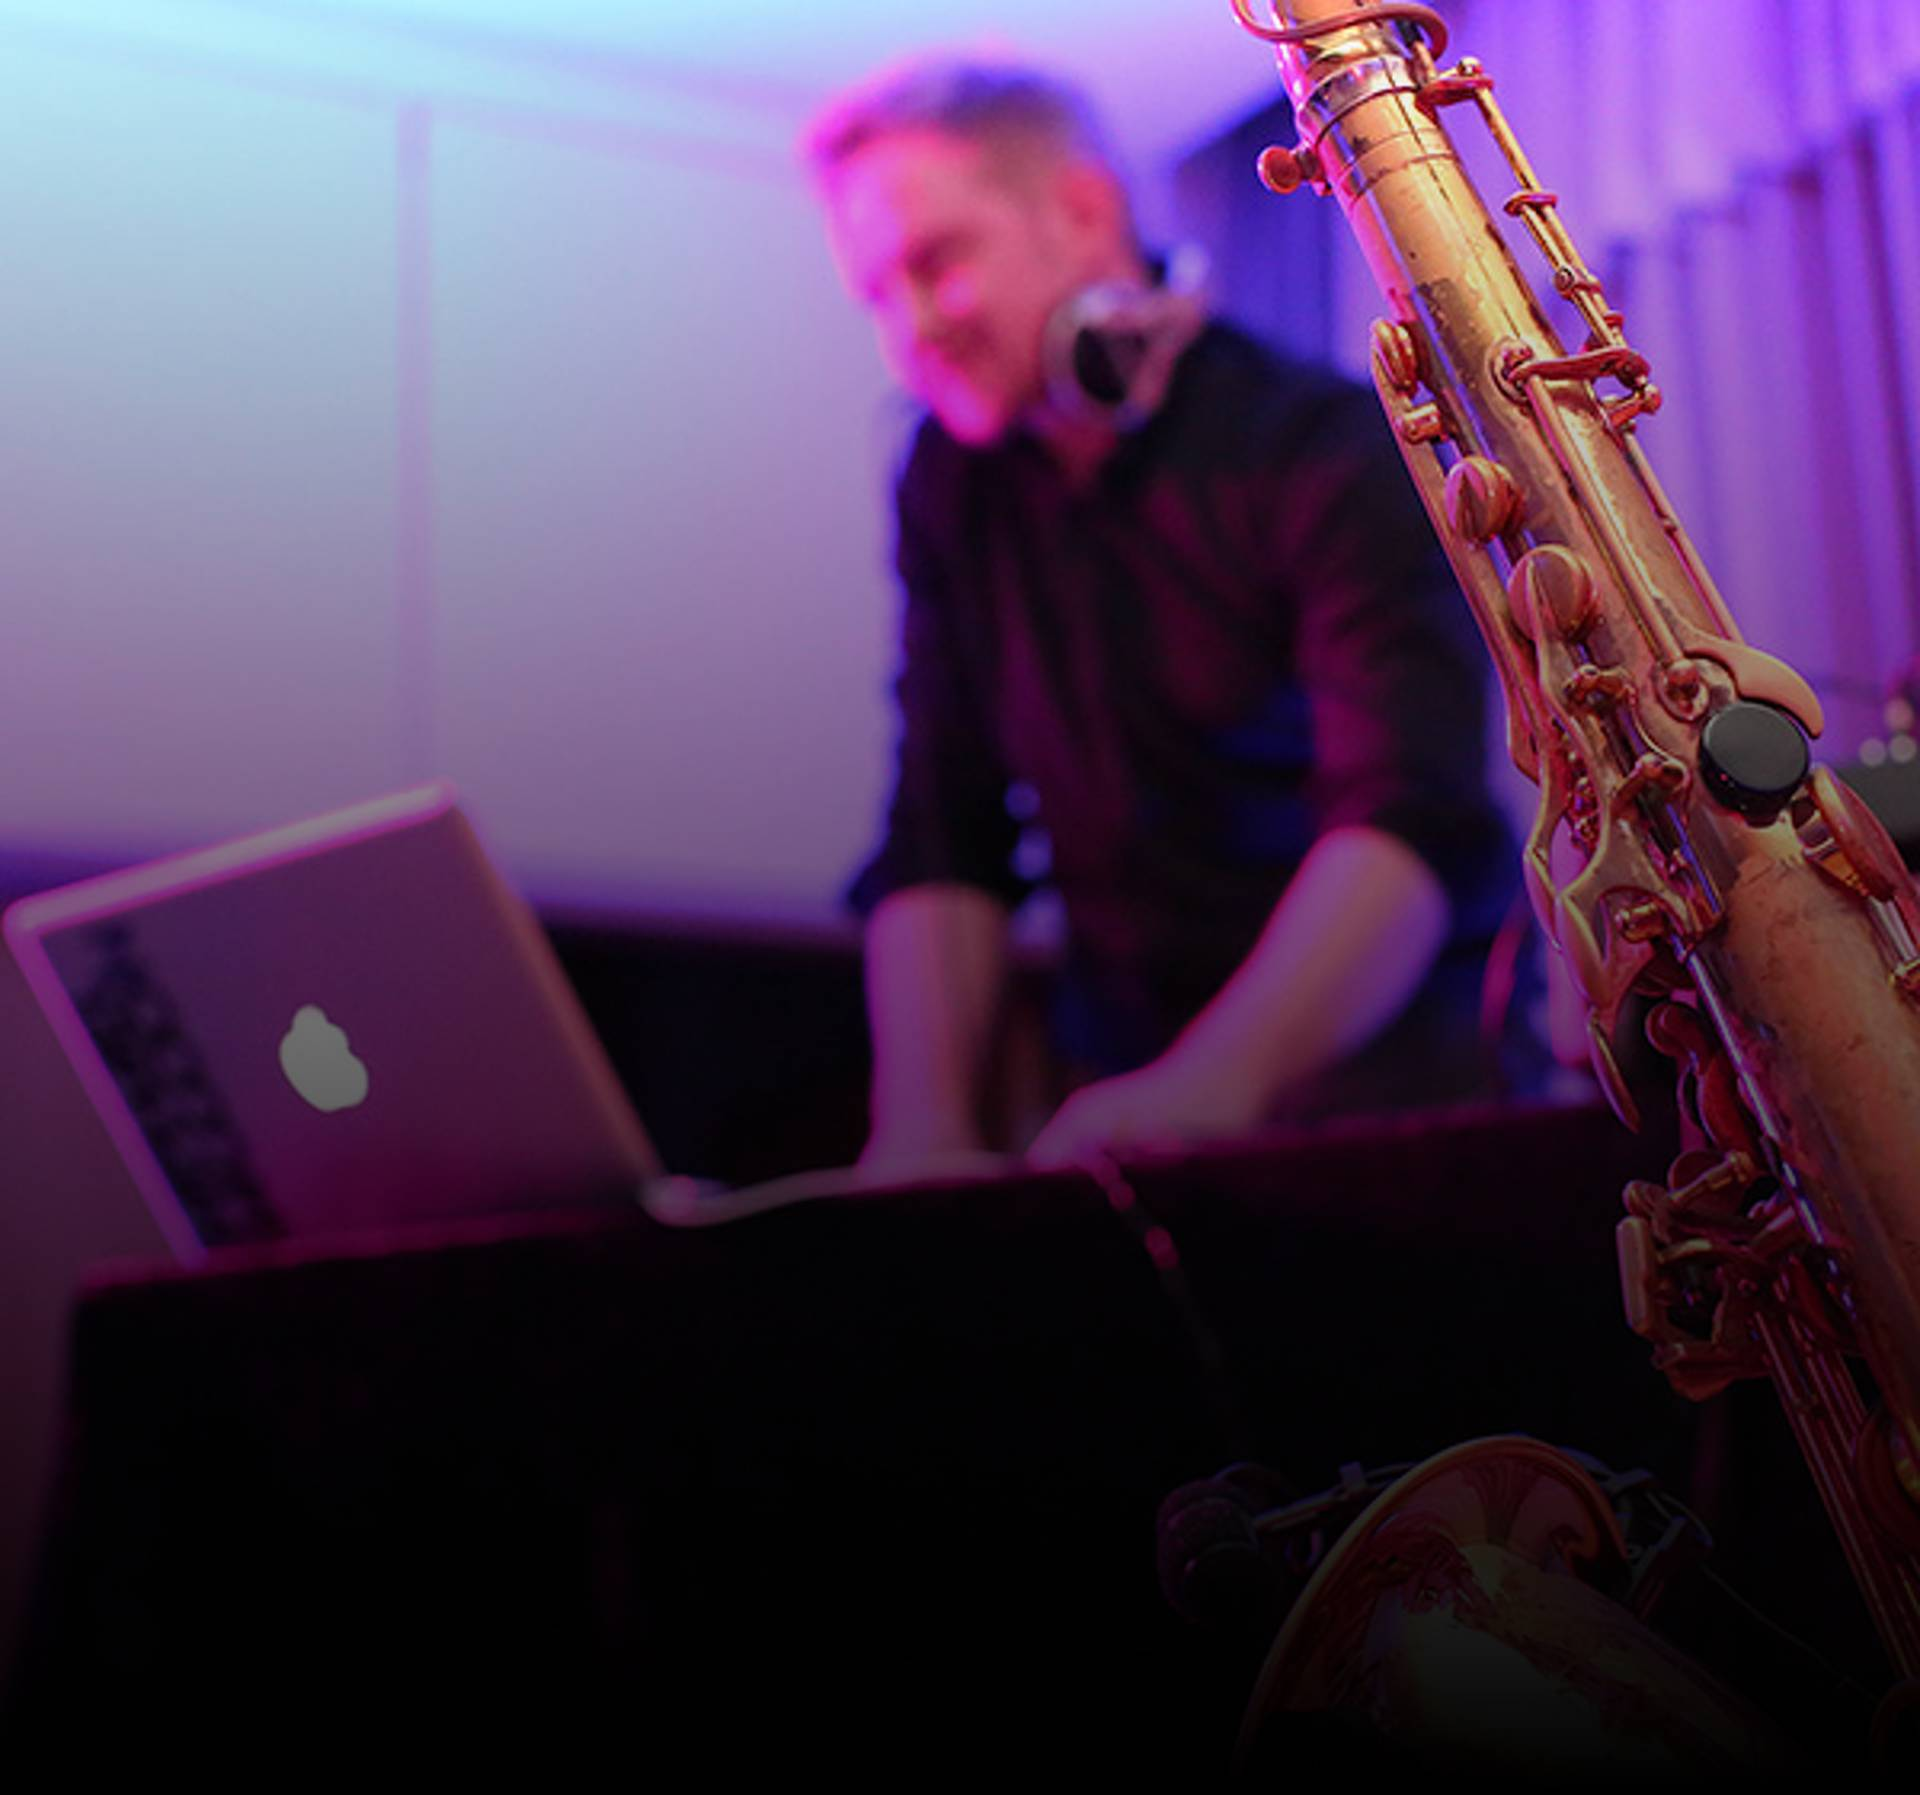 Sax is in the House - Saxophone and DJ - Künstler-Collection